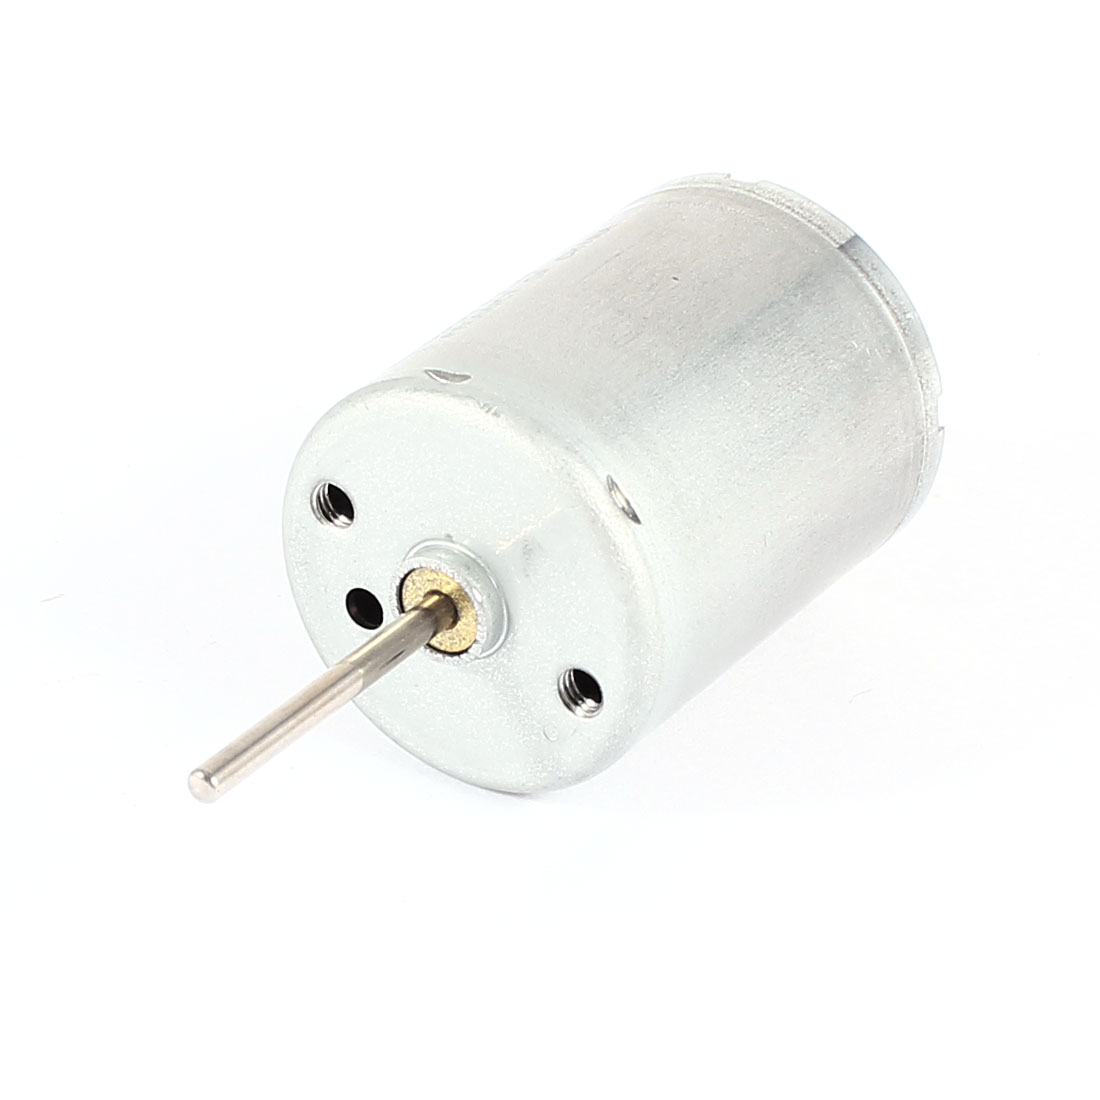 4500RPM Rotary Speed Cylinder Shape Vibration DC Geared Motor 12V 23A